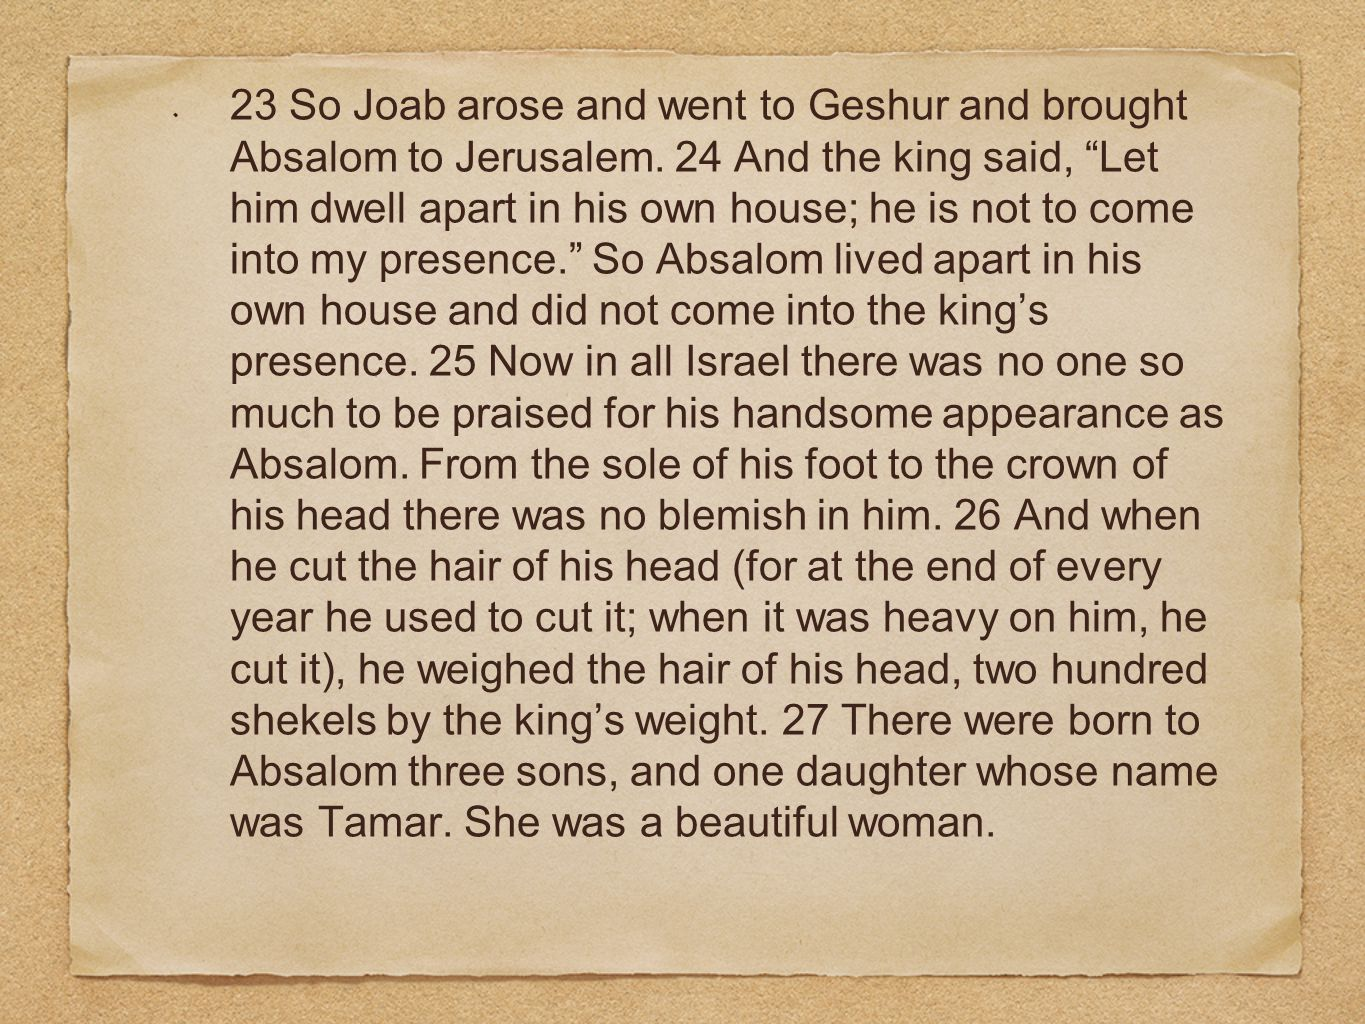 23 So Joab arose and went to Geshur and brought Absalom to Jerusalem.